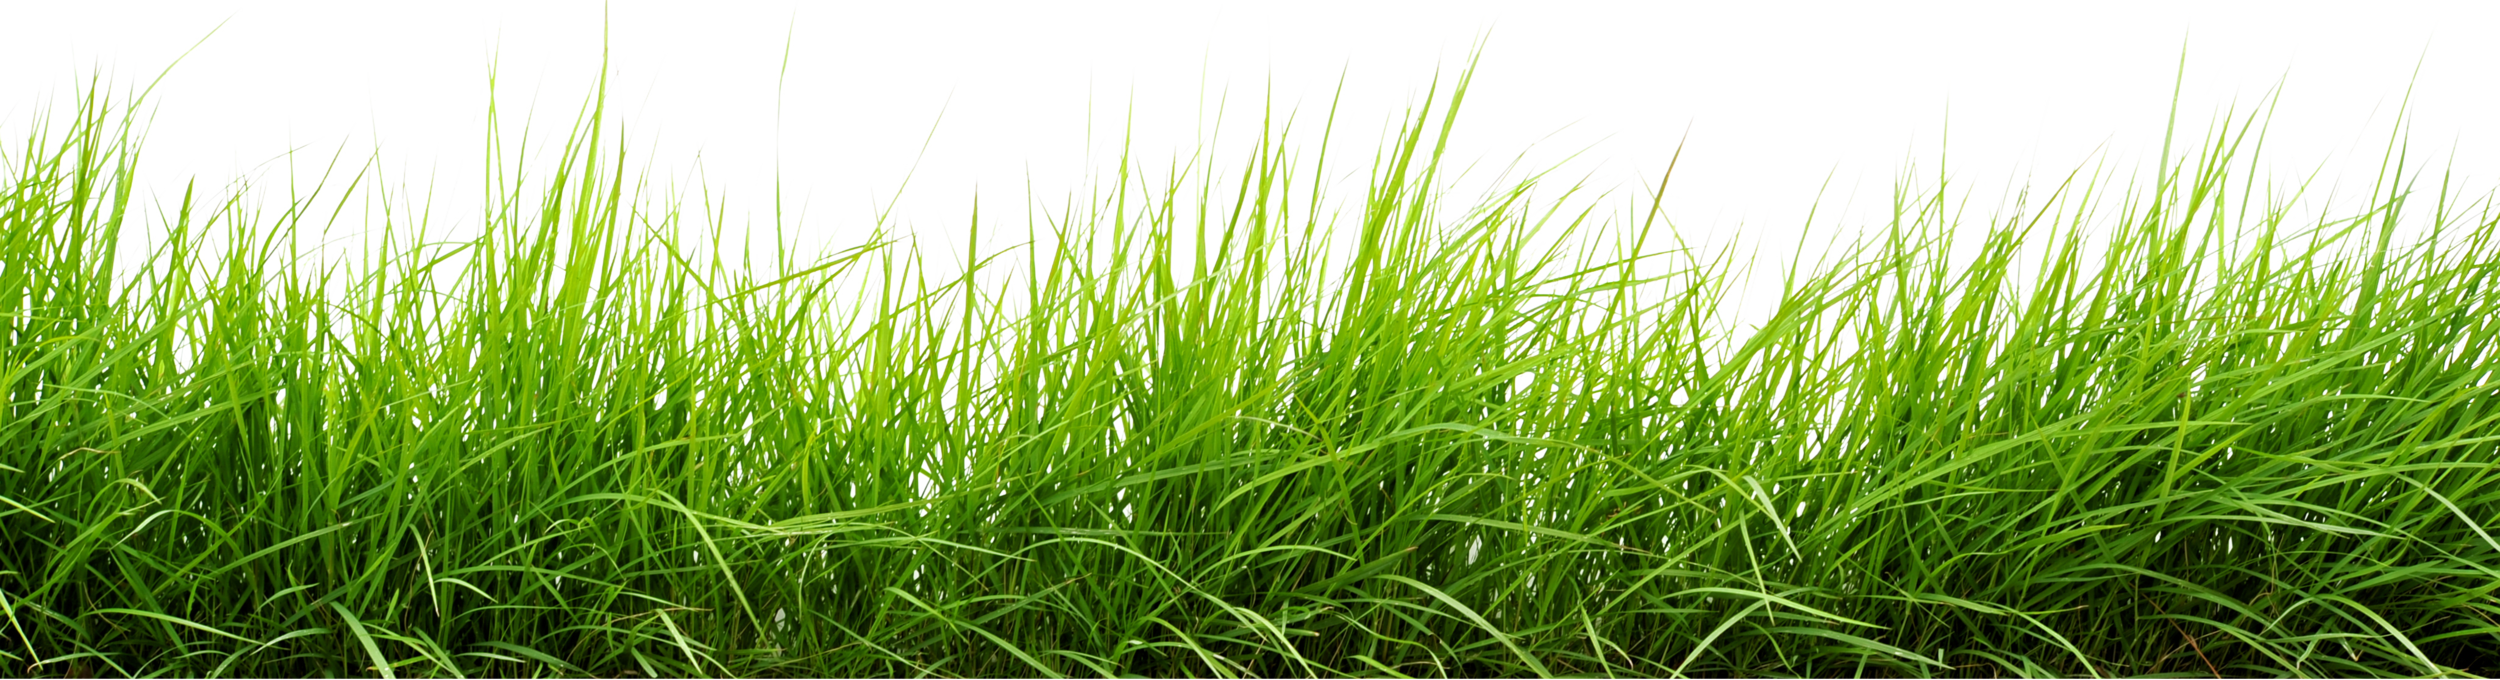 Grasses PNG HD - 150641